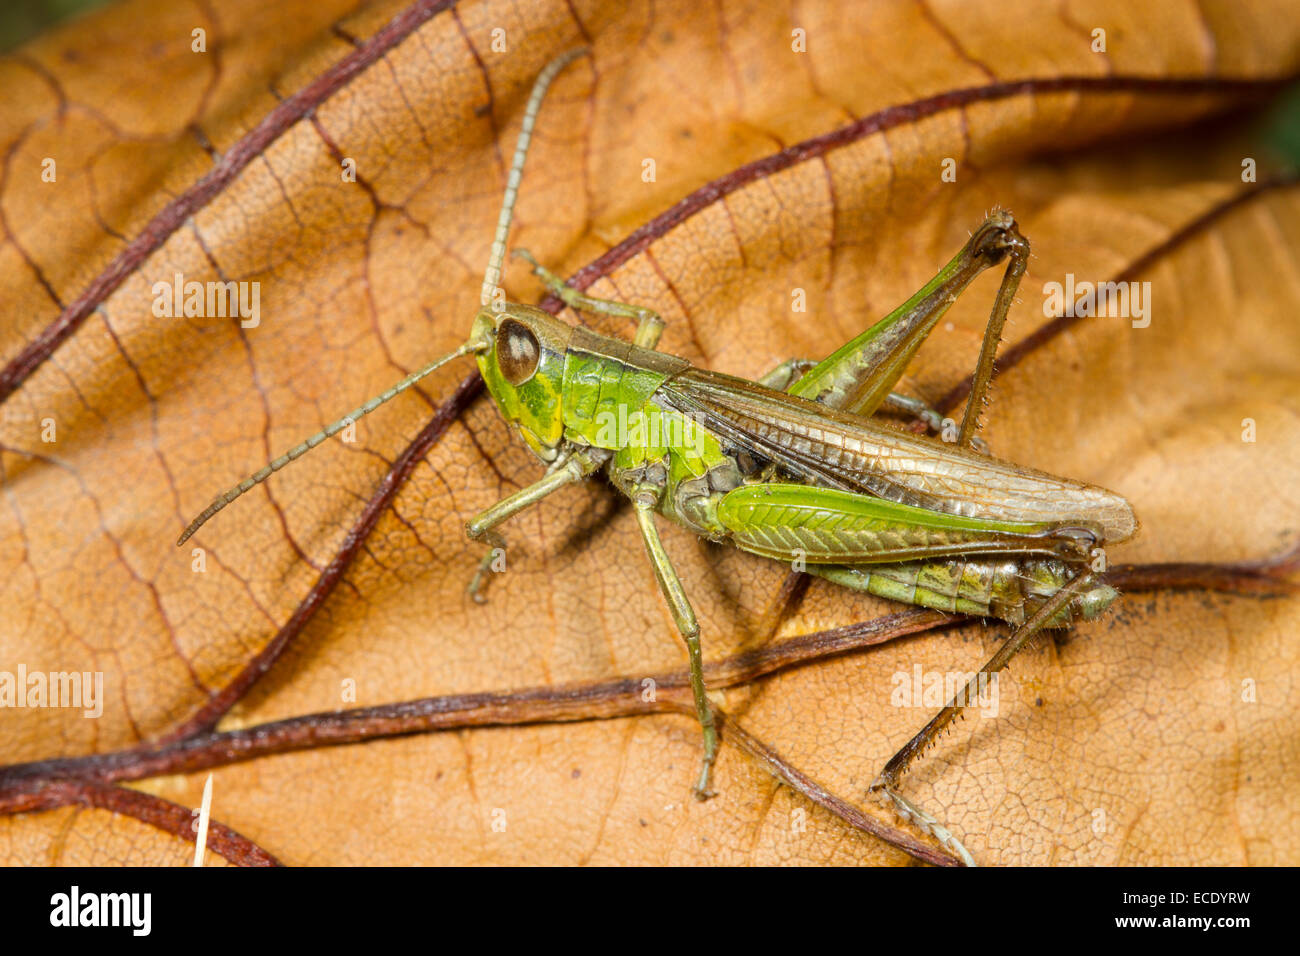 Lesser Marsh Grasshopper (Chorthippus albomarginatus) adult male basking on a leaf. Shropshire, England. August. - Stock Image